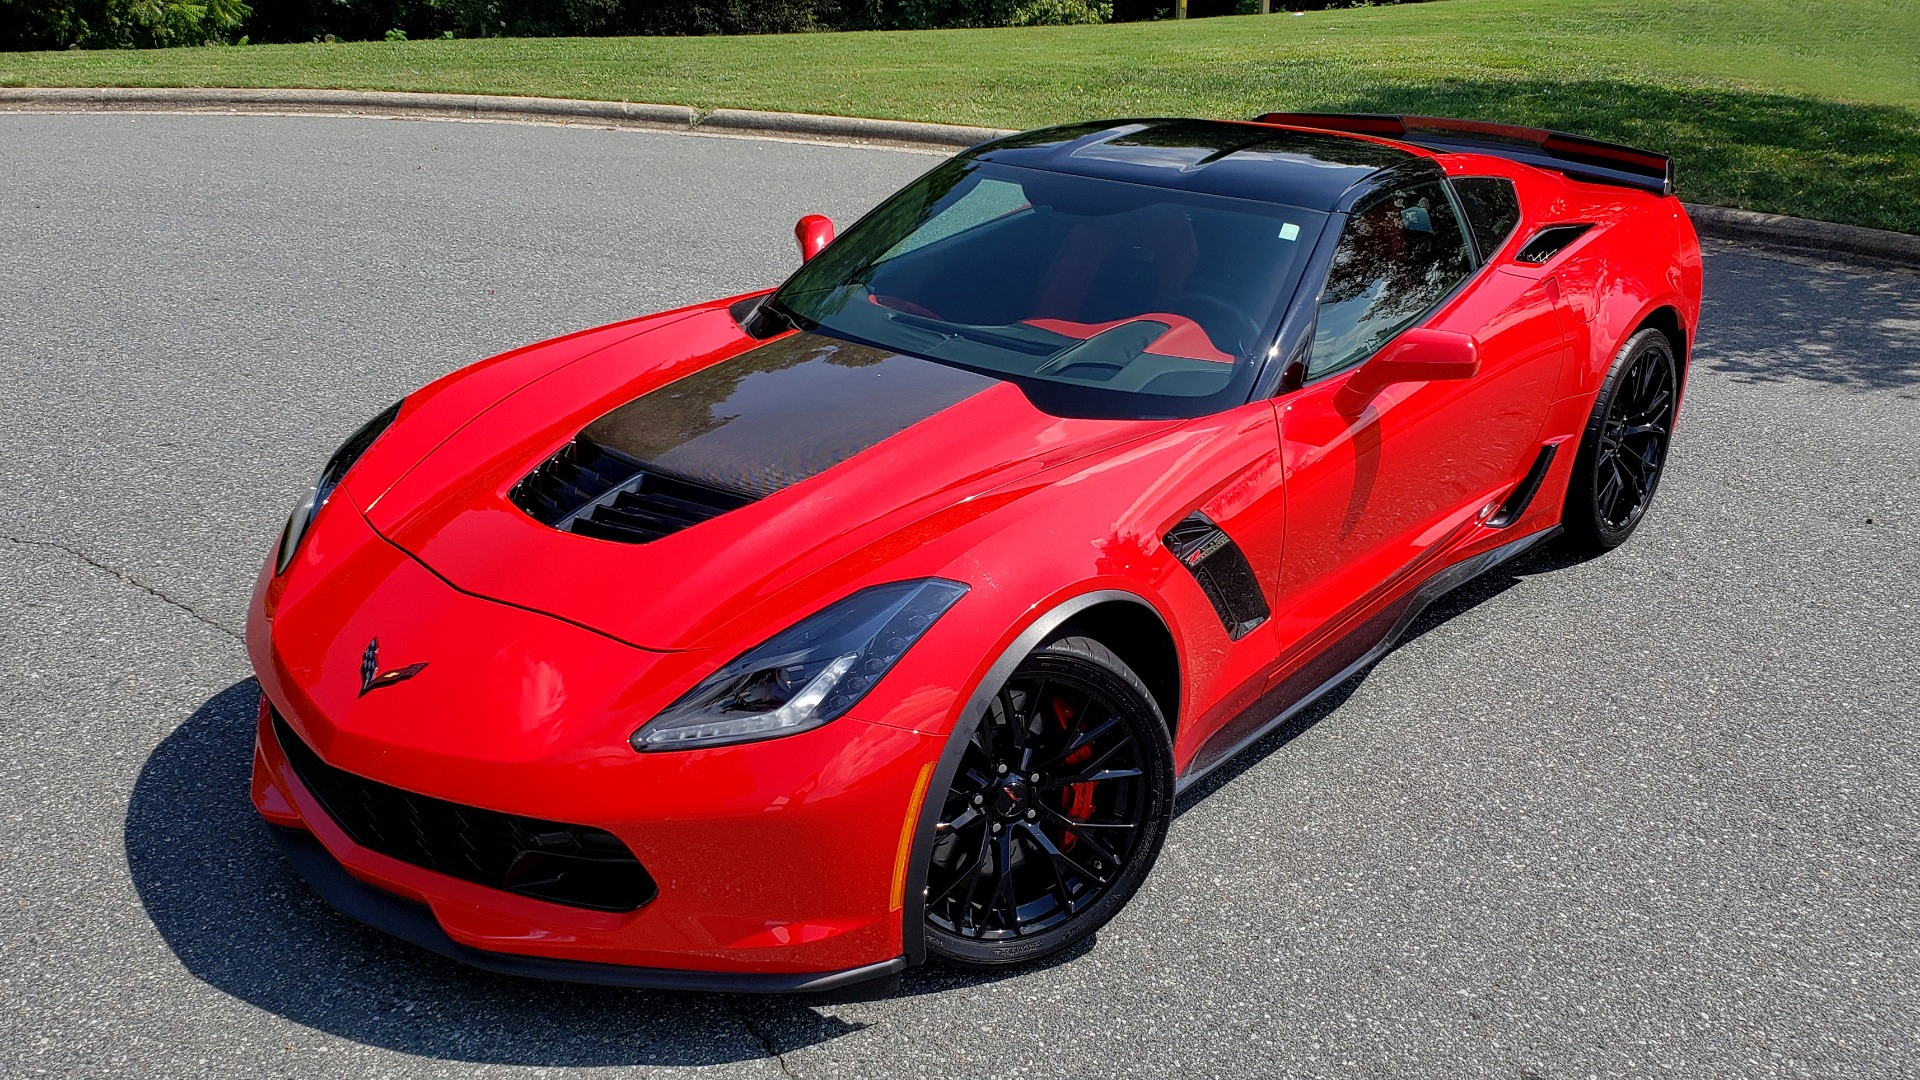 Used 2016 Chevrolet CORVETTE Z06 3LZ / 6.2L SUPERCHARGED 650HP / NAV / BOSE / REARVIEW for sale Sold at Formula Imports in Charlotte NC 28227 2